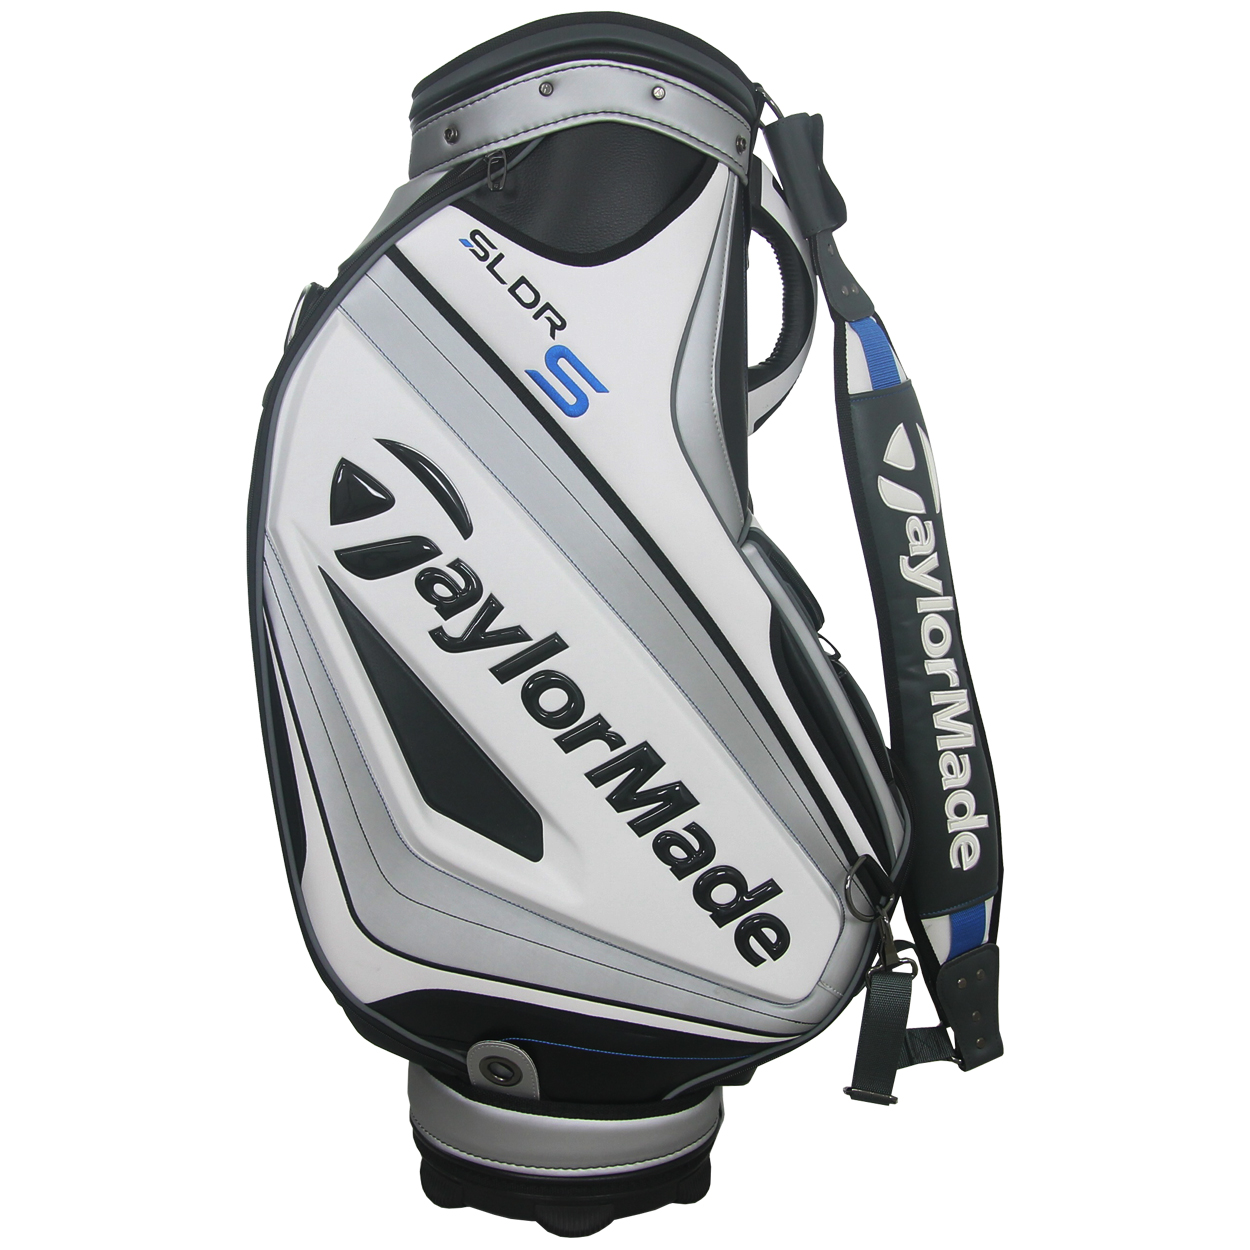 Taylormade Golf Bag >> Taylormade Sldr S 10 5 Tour Staff Bag Golfetail Com